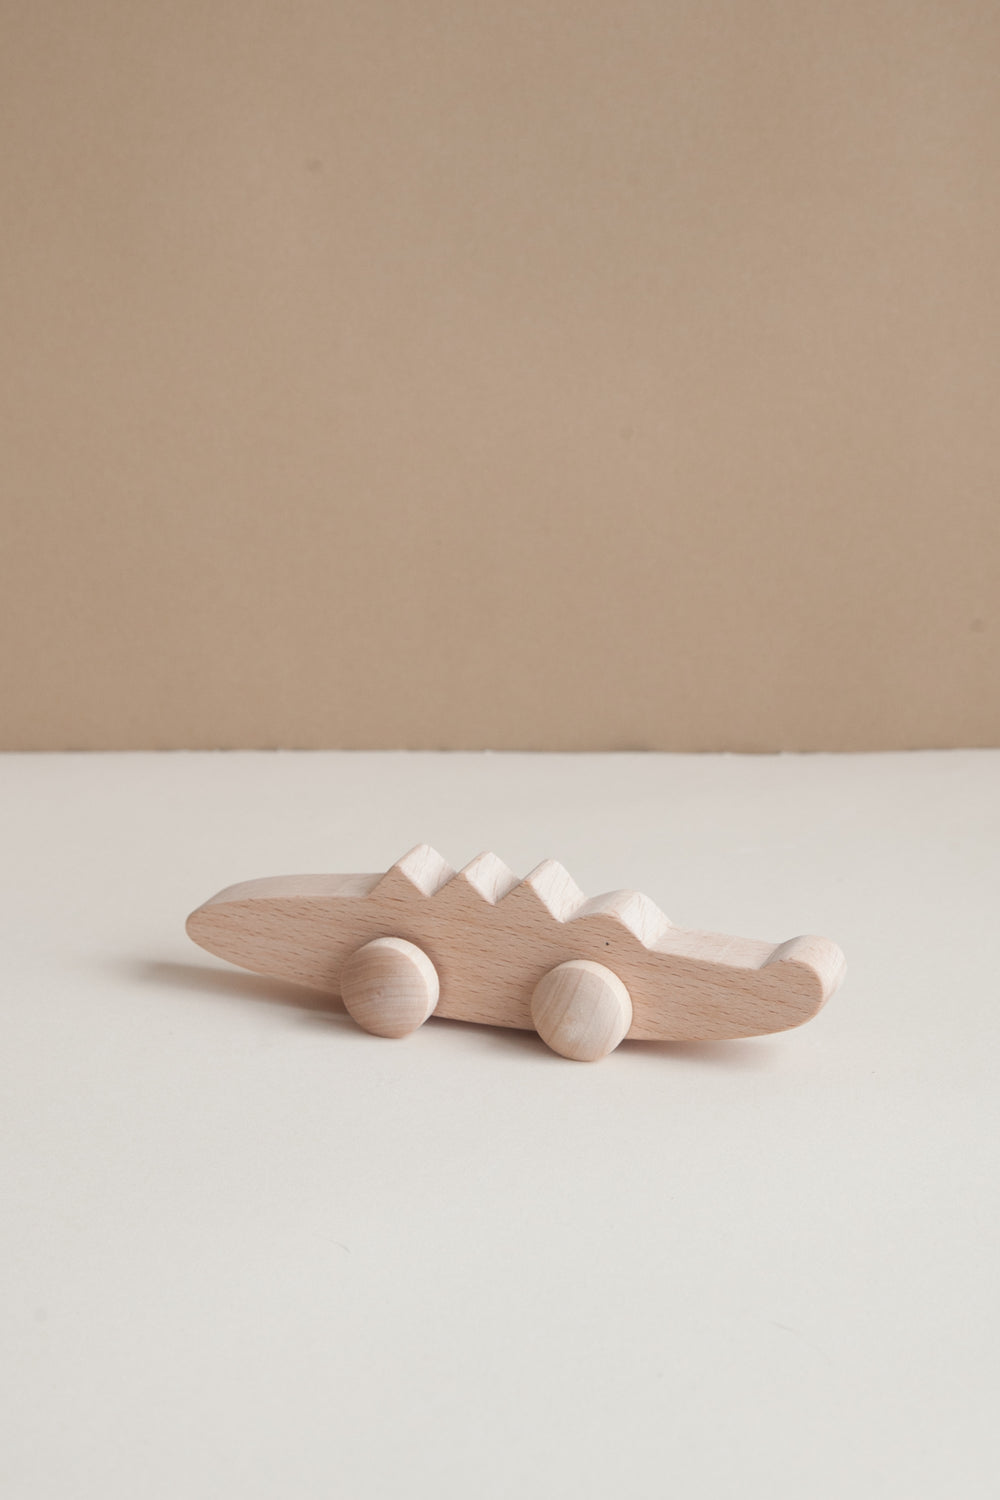 Wooden Crocodile Toy